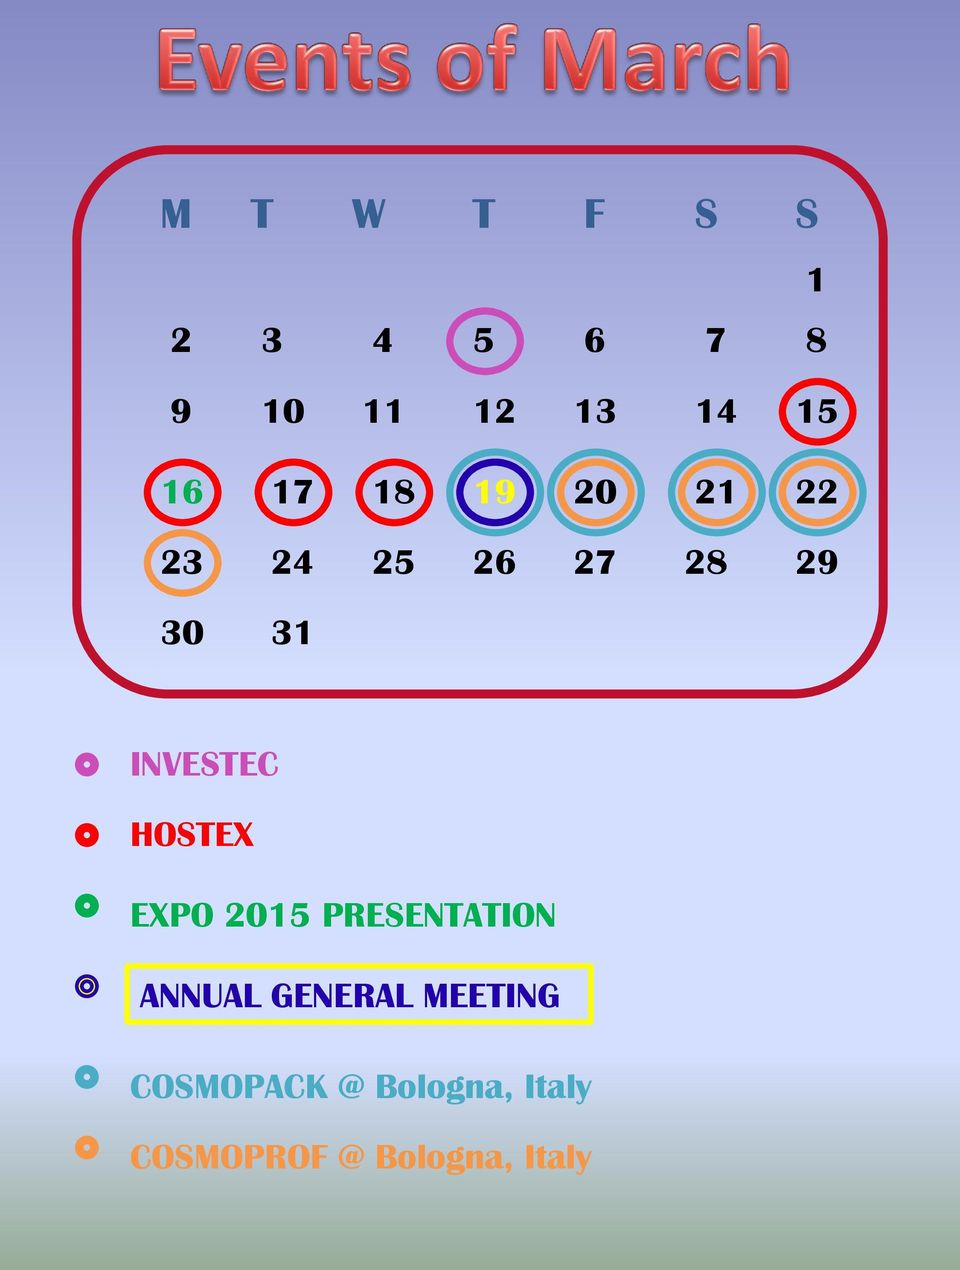 HOSTEX EXPO 2015 PRESENTATION ANNUAL GENERAL MEETING